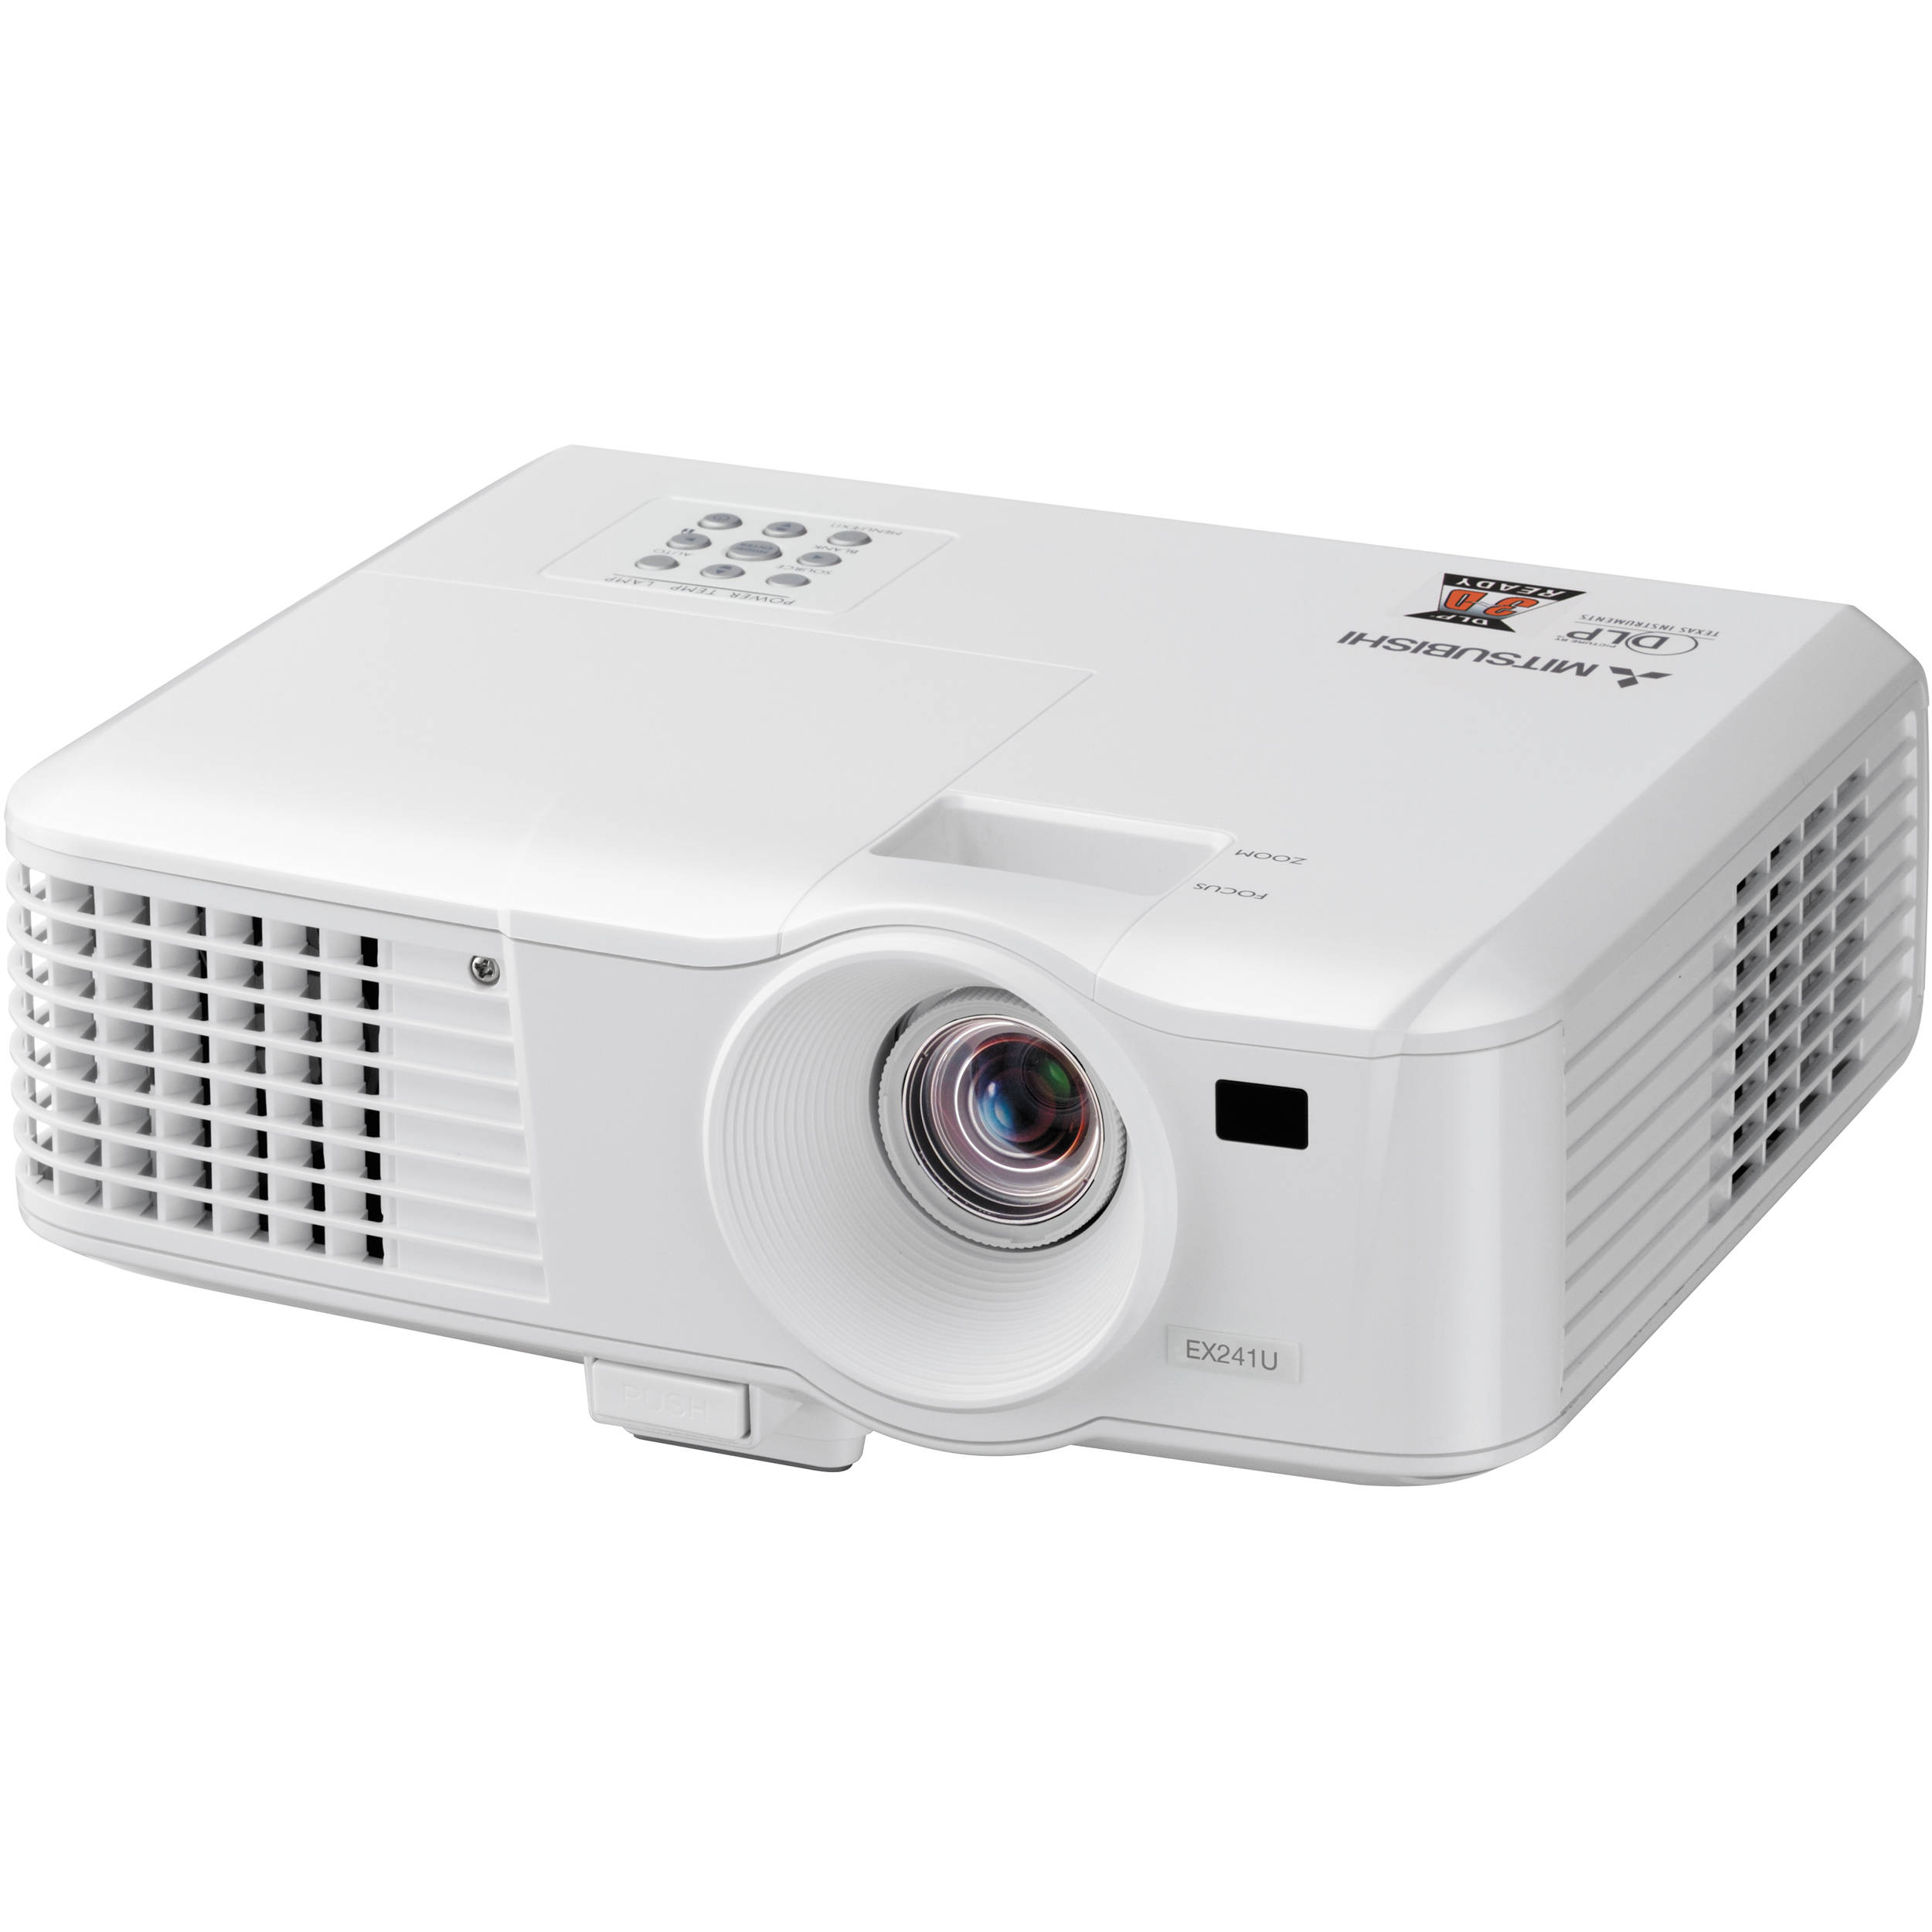 Mitsubishi ex241u mobile xga dlp projector ex241u b h photo for Dlp portable projector